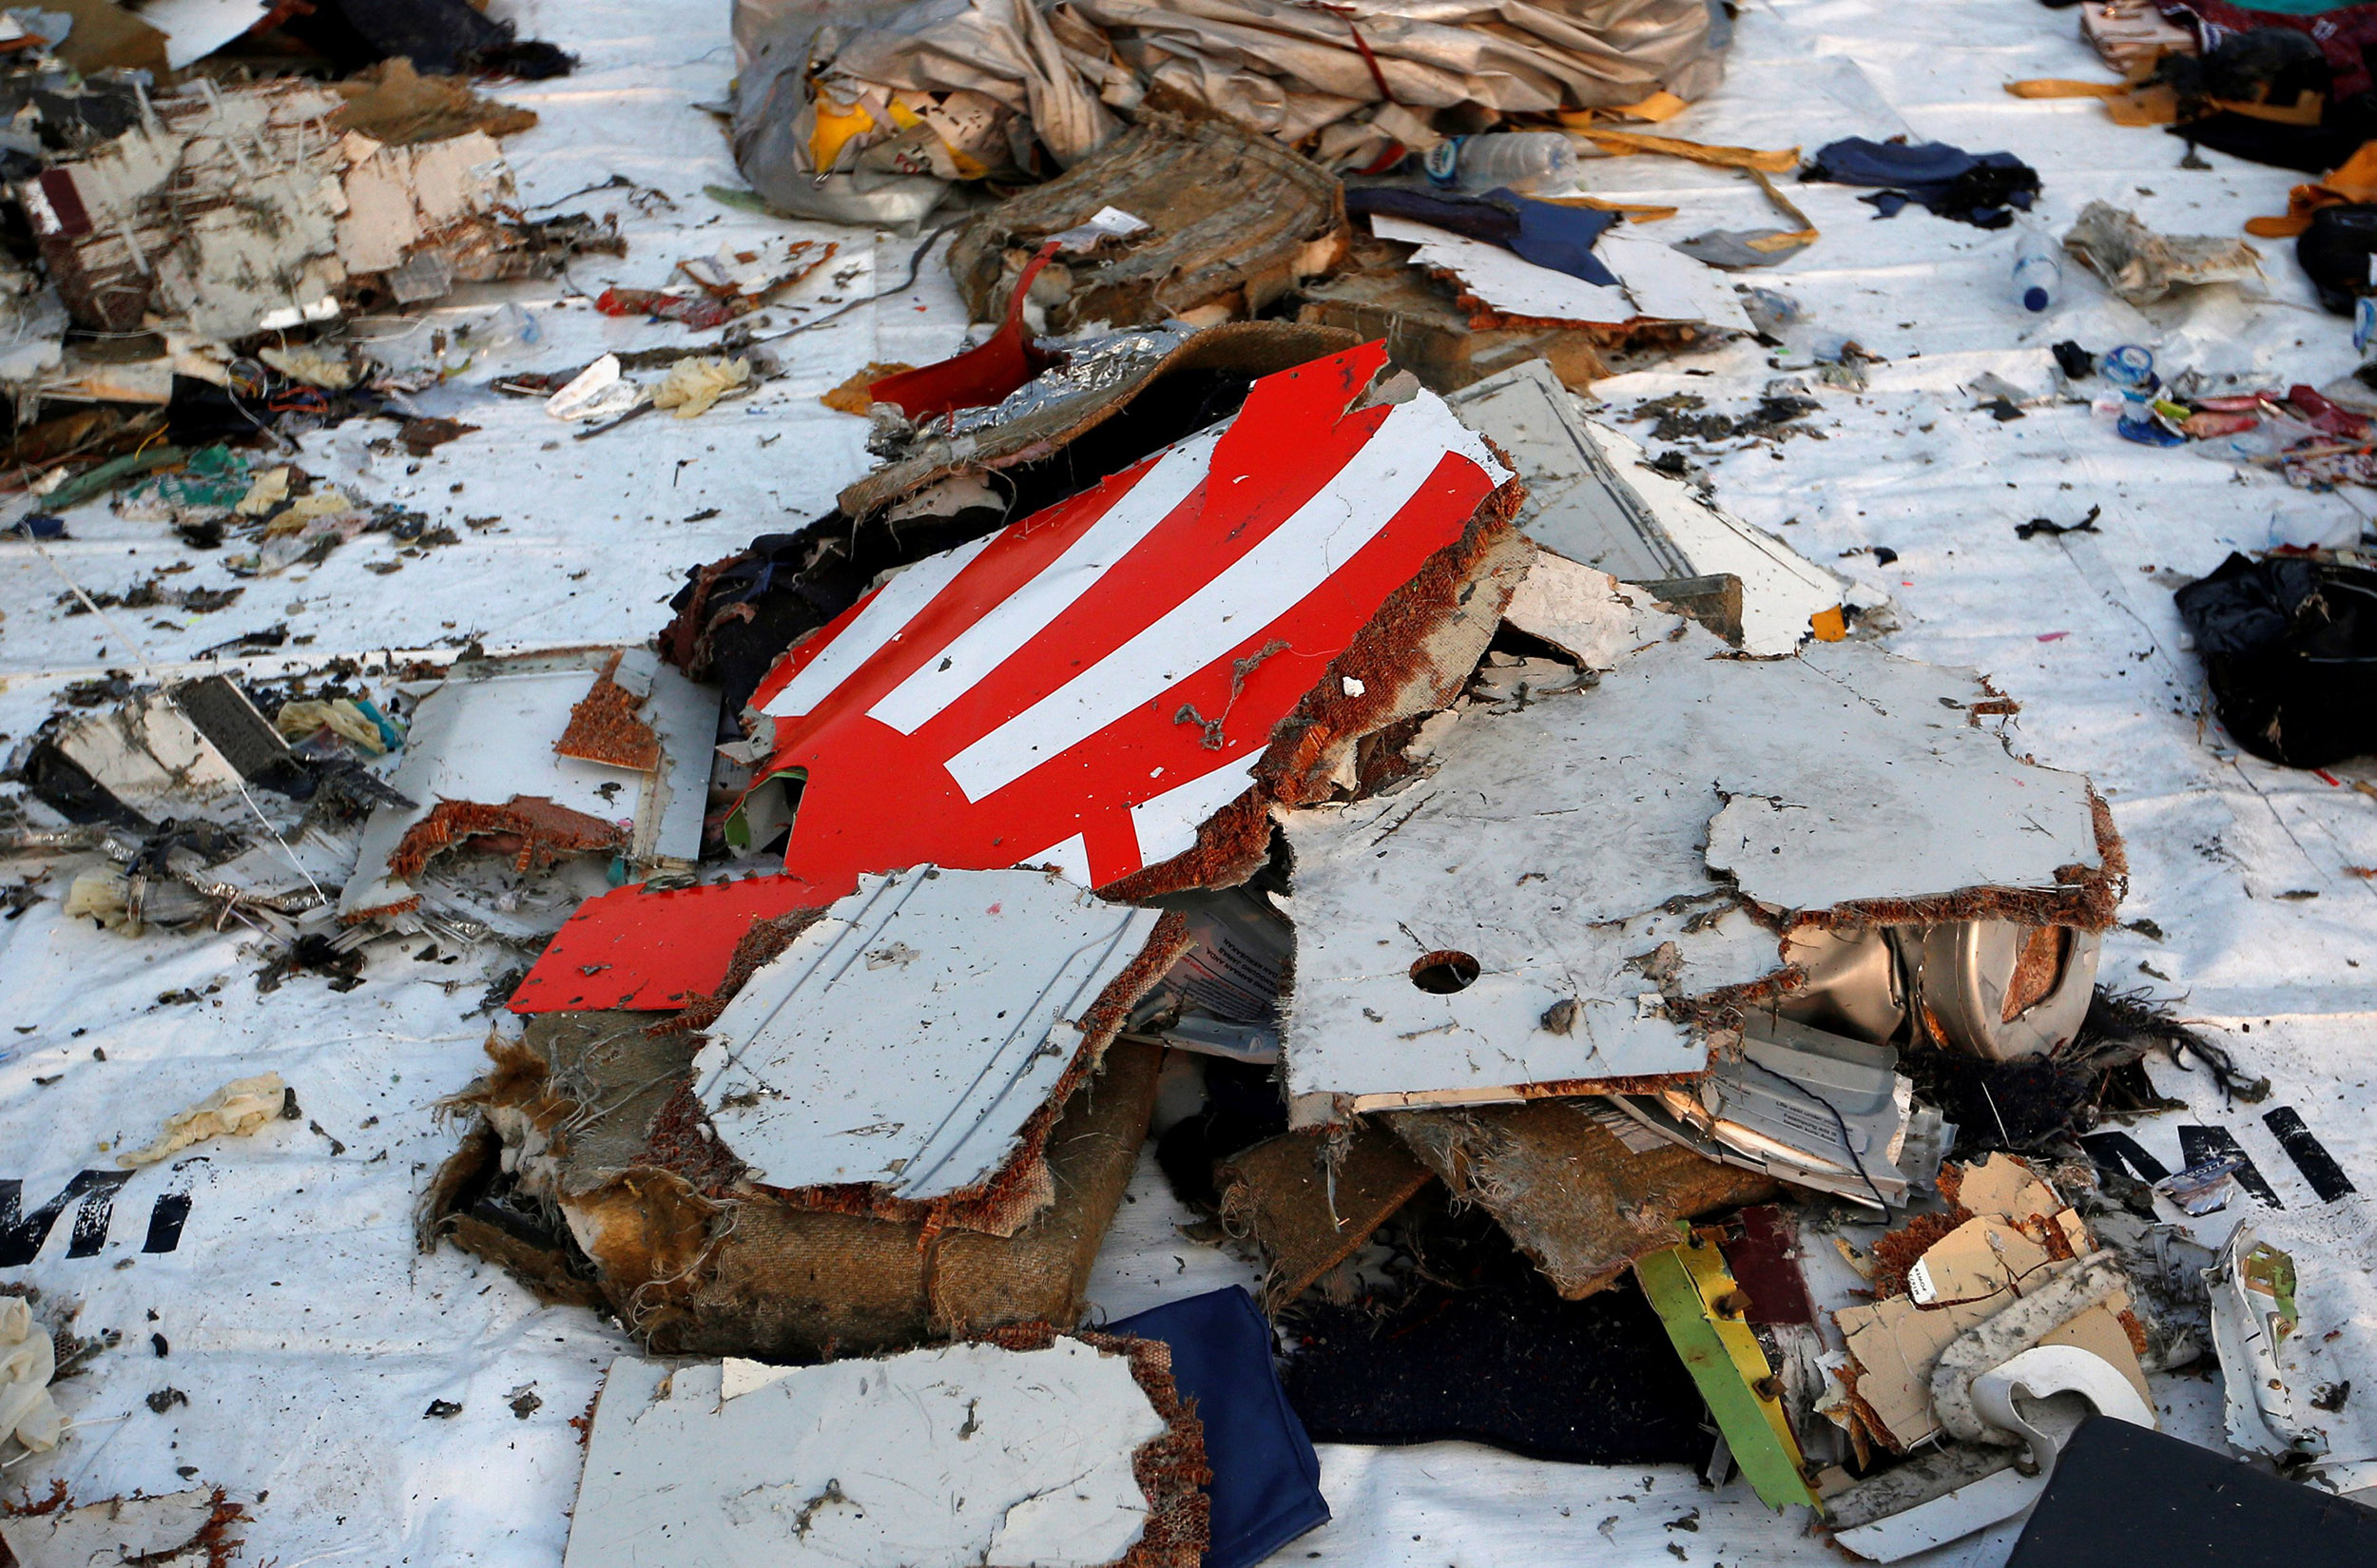 Image: Wreckage recovered from Lion Air flight JT610 that crashed into the sea lies at Tanjung Priok port in Jakarta, Indonesia